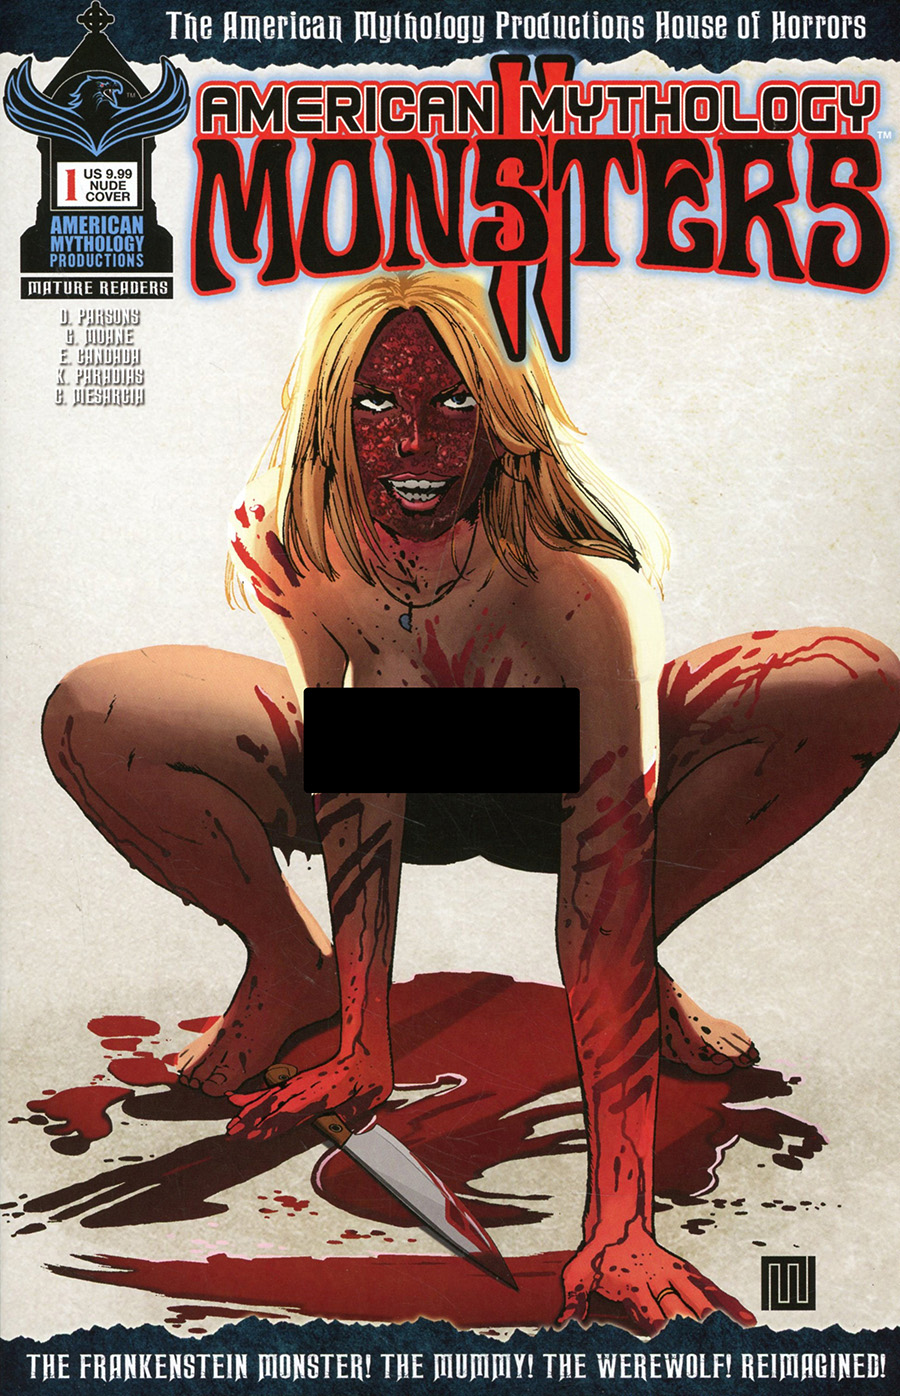 American Mythology Monsters Vol 2 #1 Cover B Variant Mike Wolfer Racy Cover